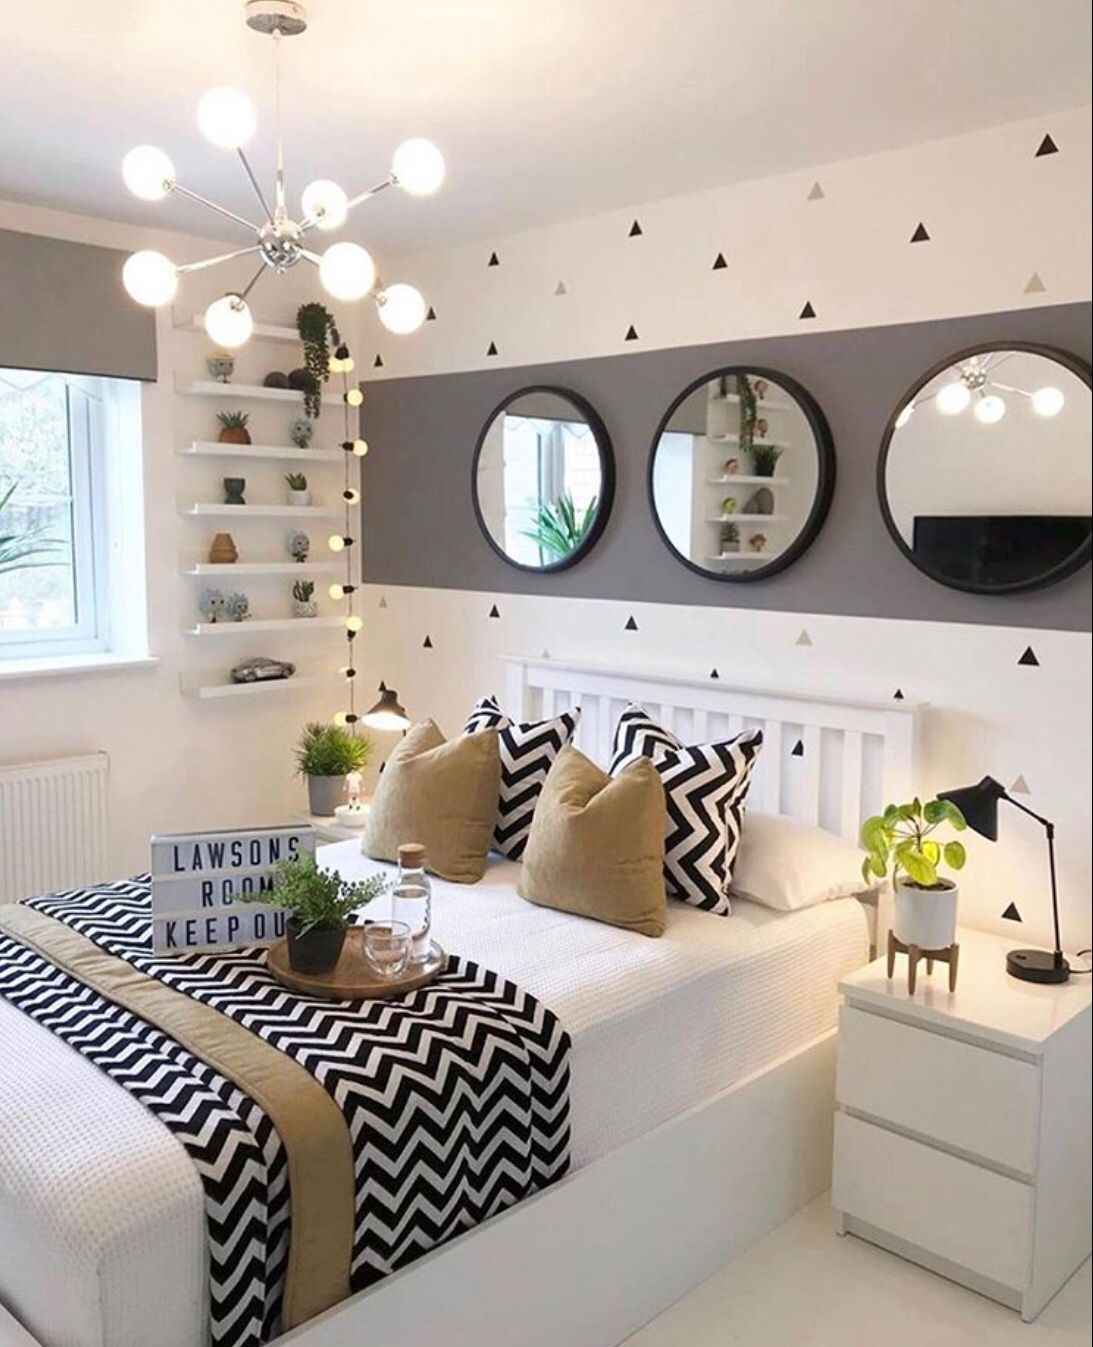 empty space over bed decor in 2020 | Small bedroom decor, Bedroom interior,  Master bedrooms decor